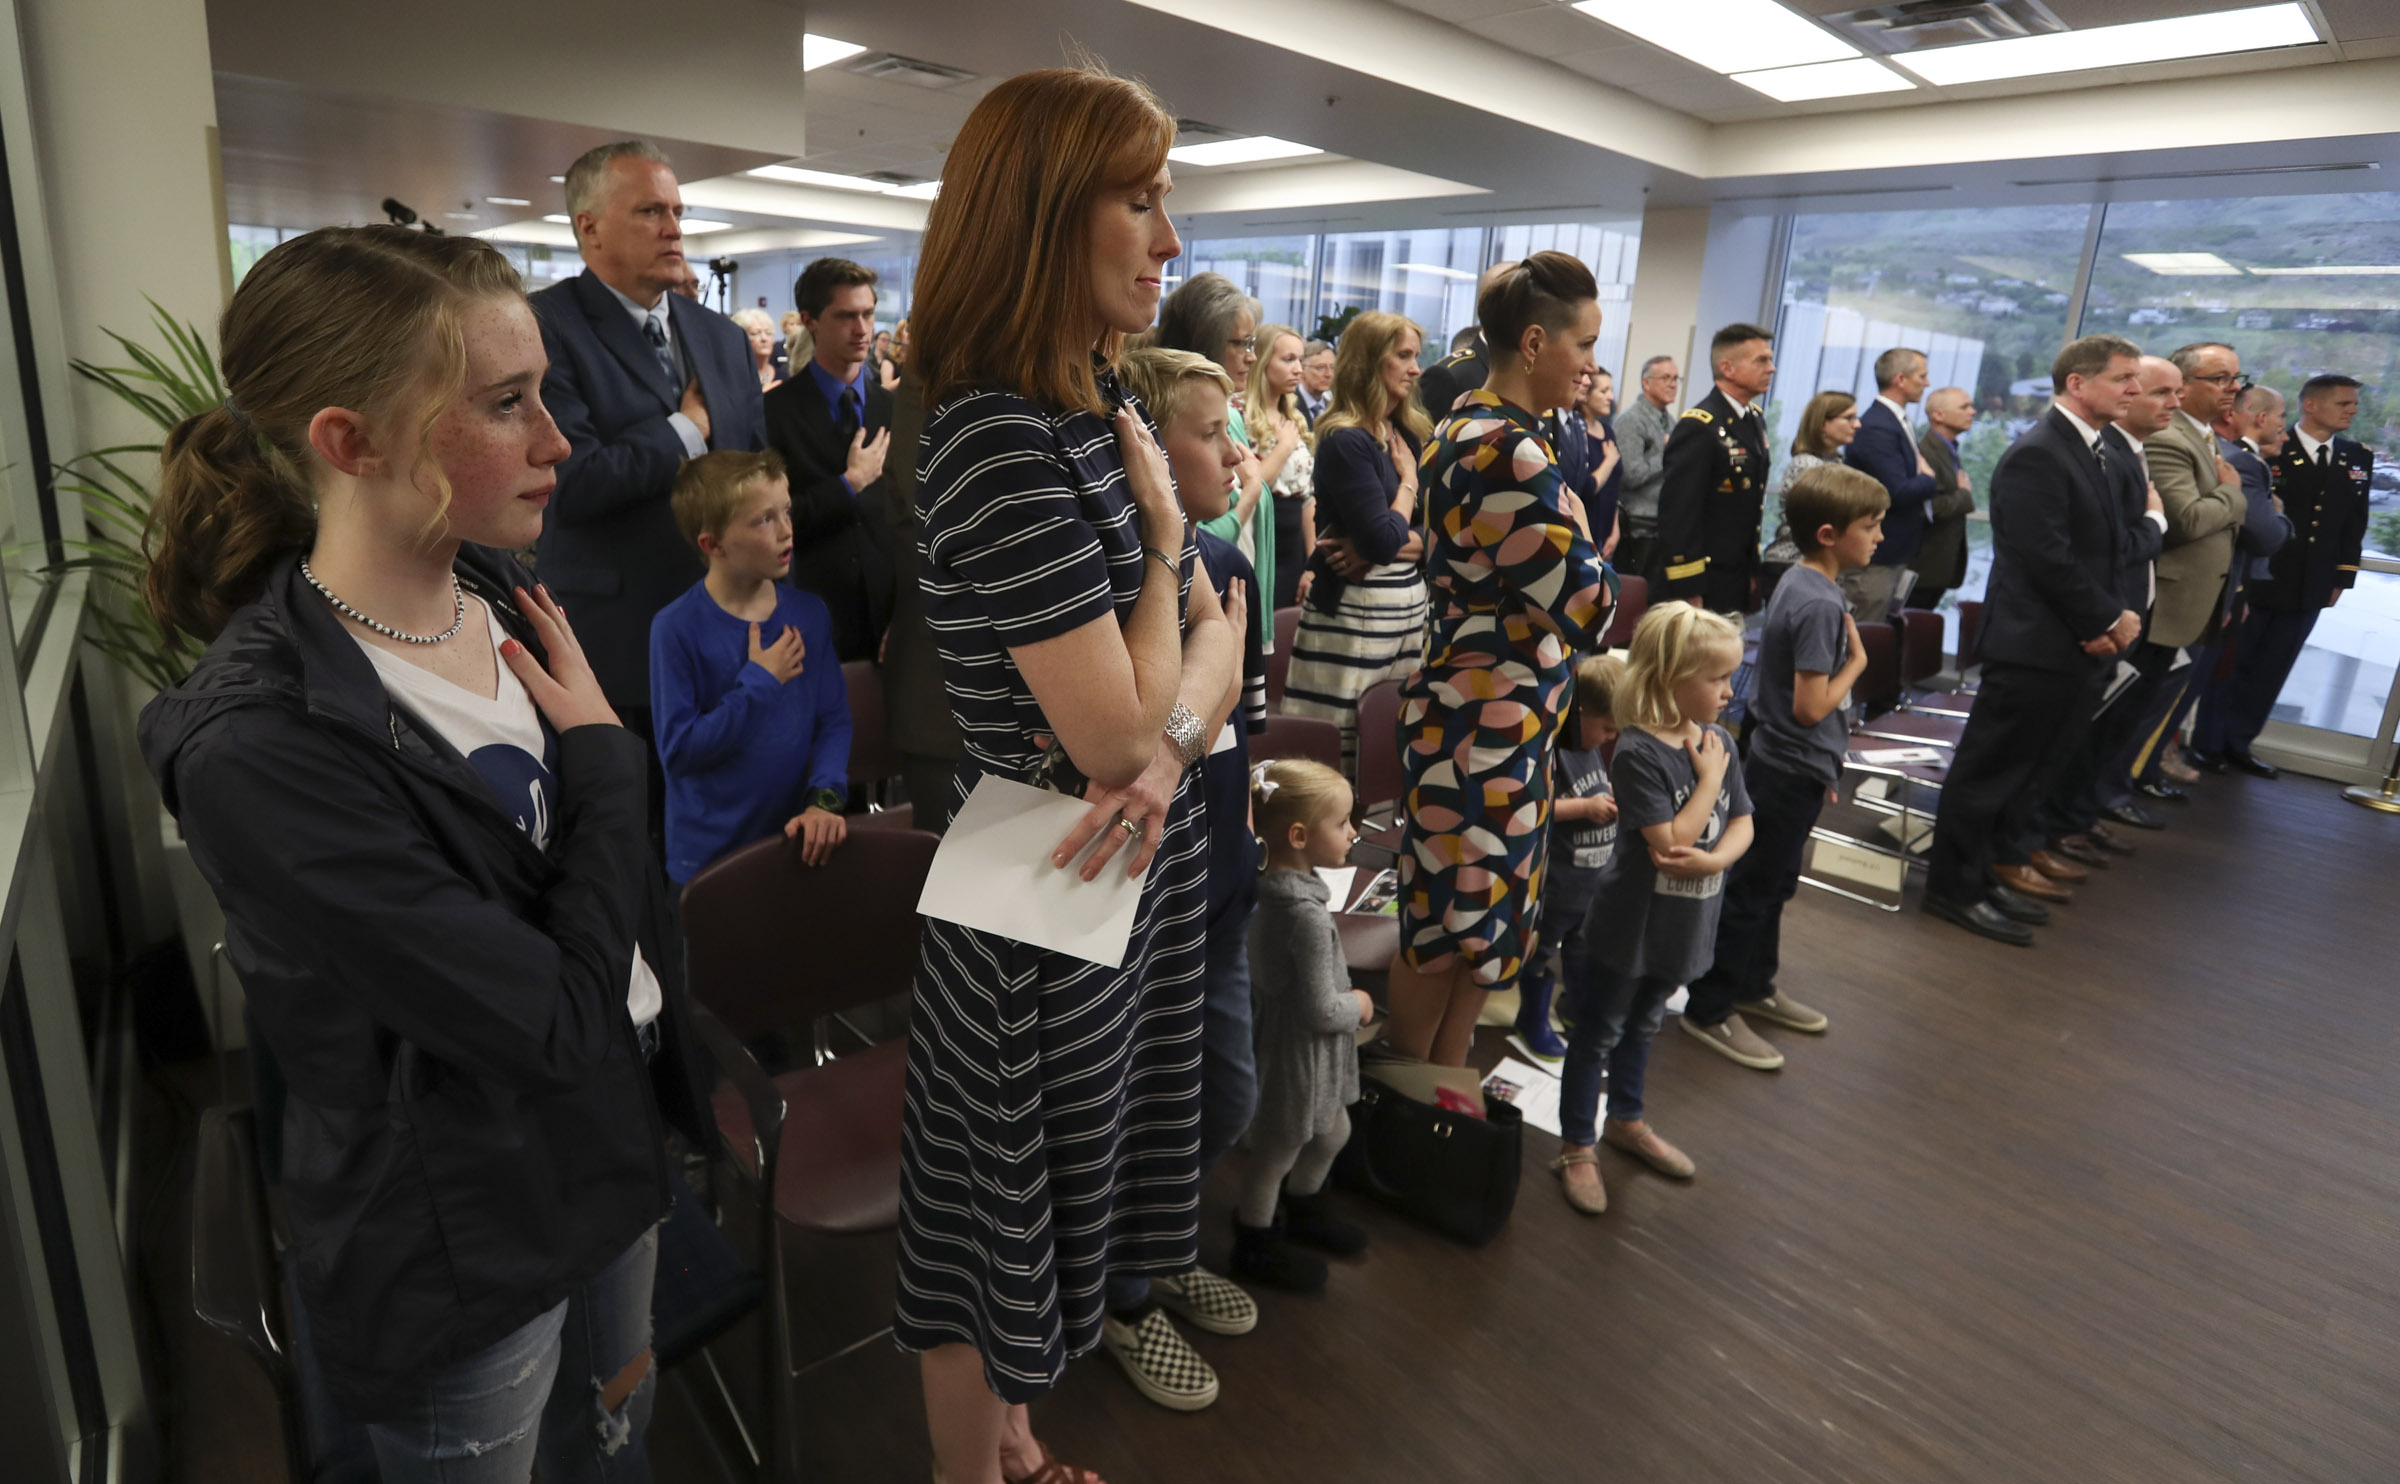 Jennie Taylor stands with her children during a ceremony where the name of her husband, Maj. Brent Taylor, was added to the Reflection Room Memorial Wall in the Wilkinson Center on the BYU campus in Provo on Thursday, May 23, 2019. Taylor was killed in Afghanistan in 2018.